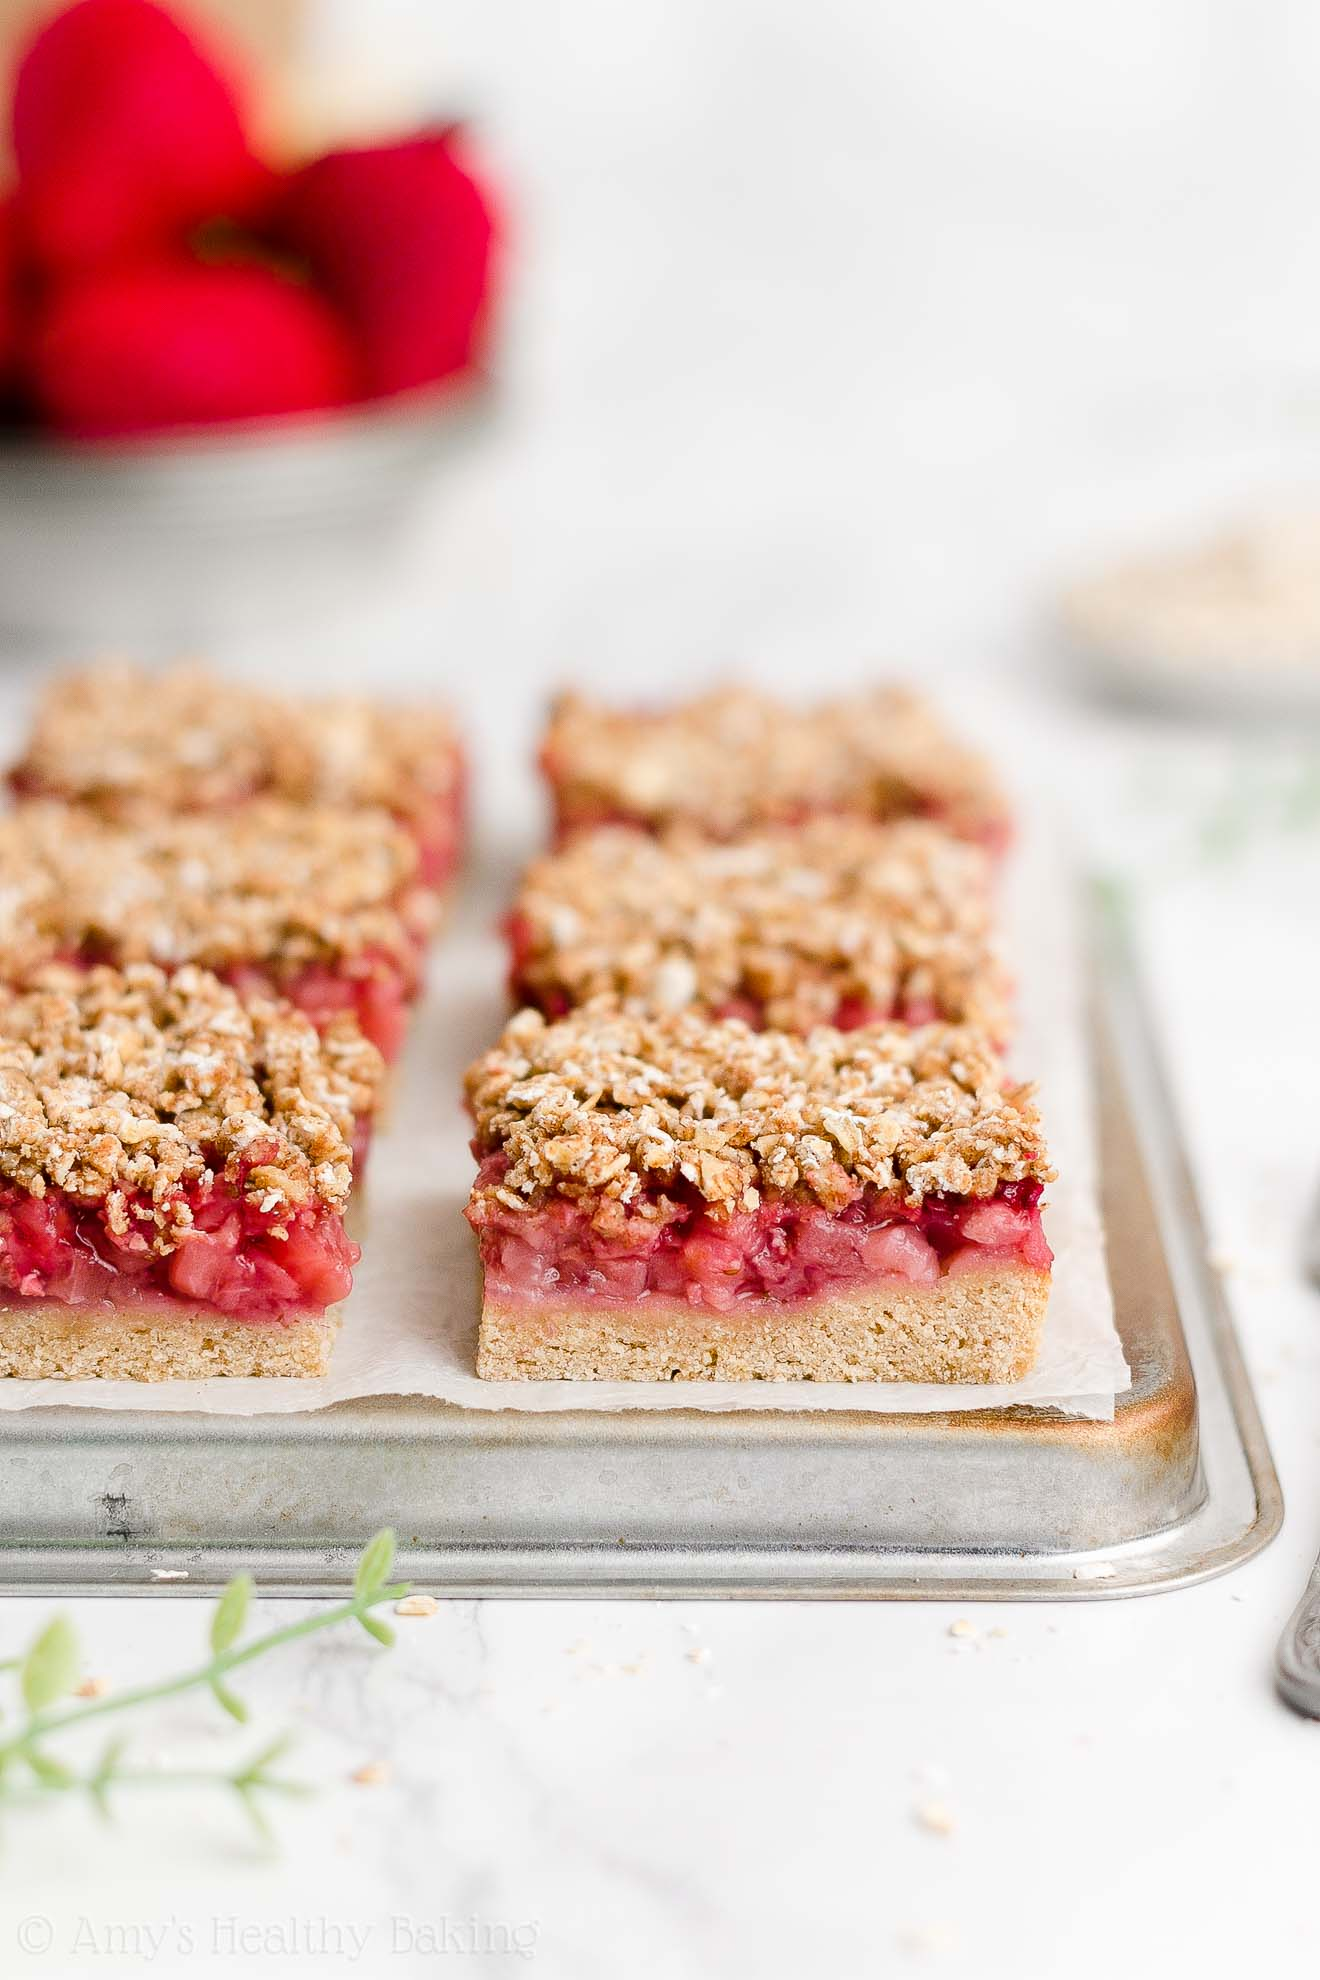 Best Healthy Weight Watchers Low Calorie No Sugar Strawberry Oat Crumble Bars